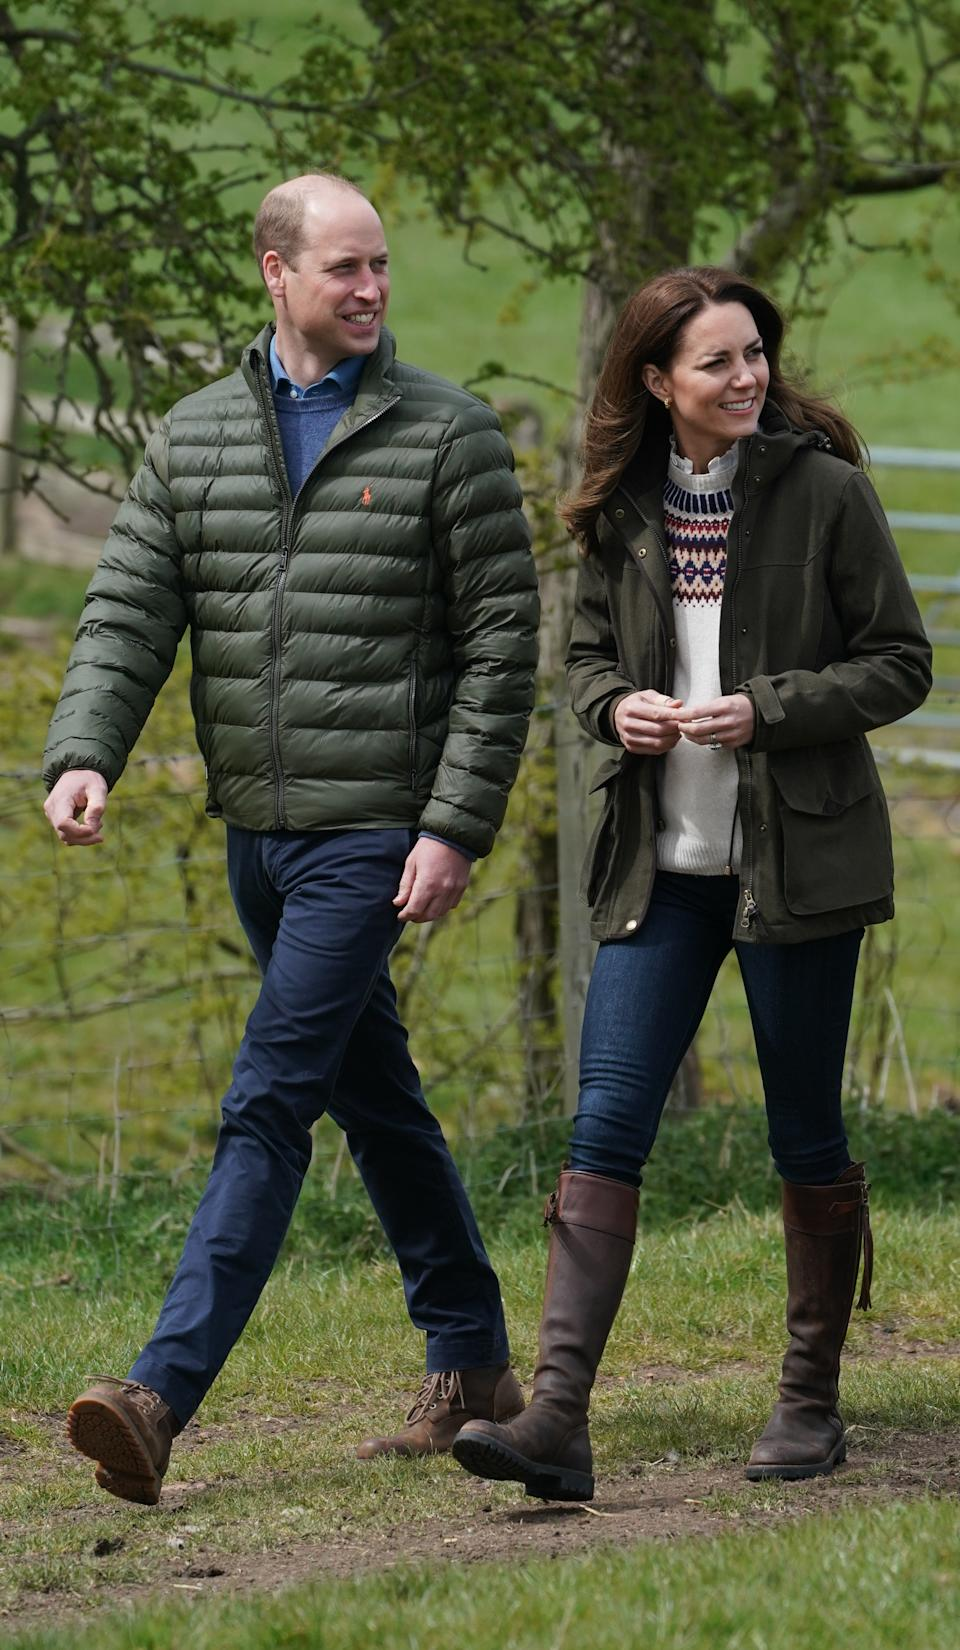 The Duke and Duchess of Cambridge walk together during their visit to Manor Farm in Little Stainton, Durham, on 27 April, 2021. (PA Images)